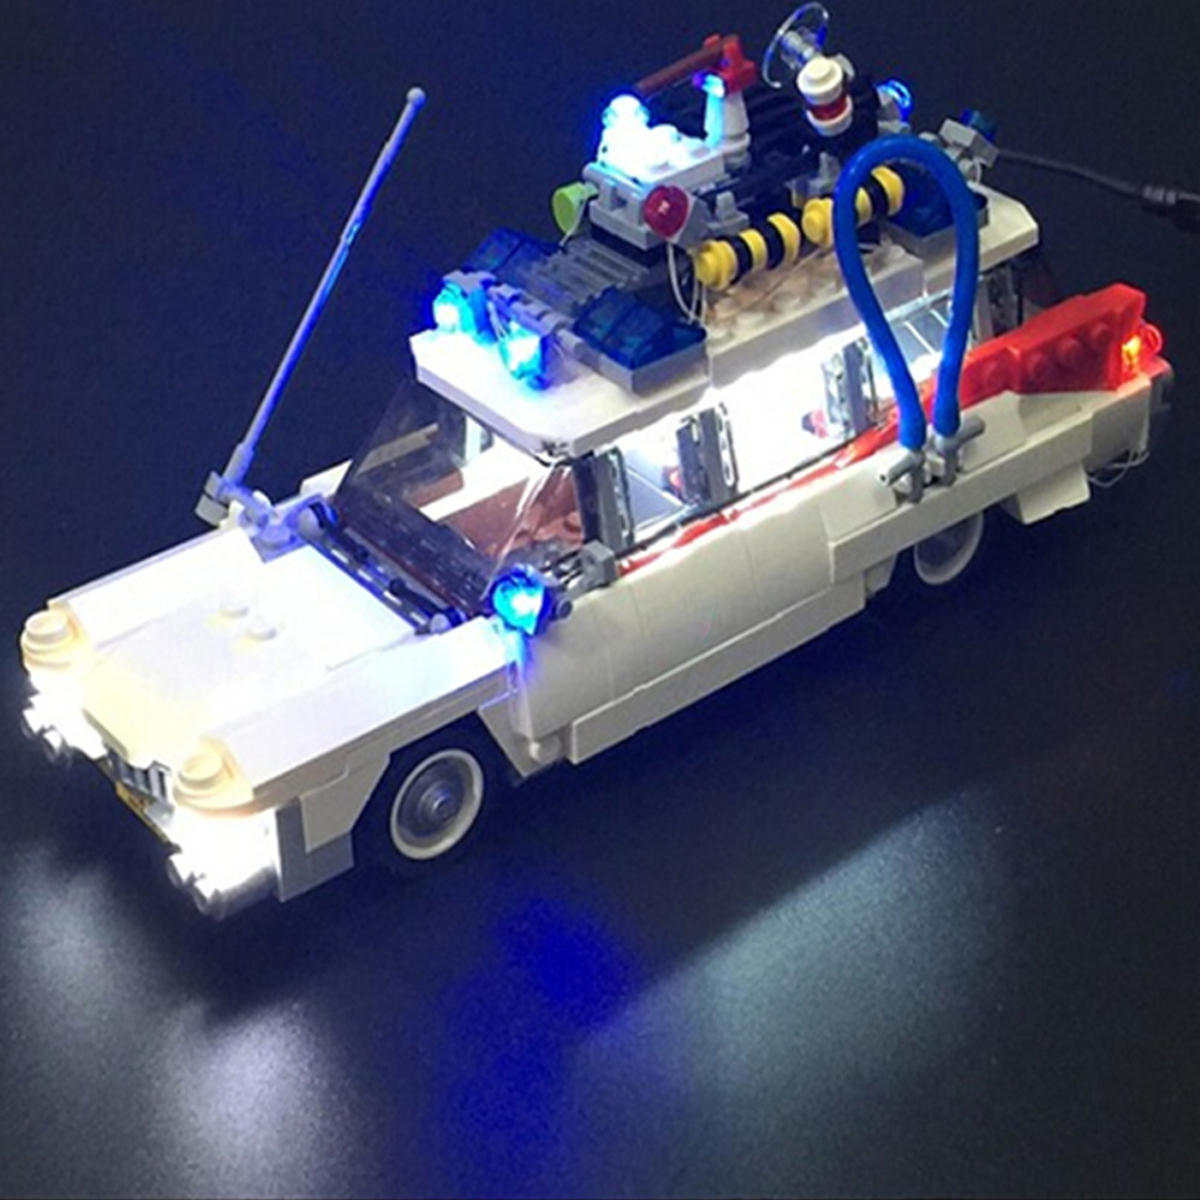 LED Light ONLY For Lego 21108 Ghostbusters Ecto-1 Lighting Bricks USB Interface